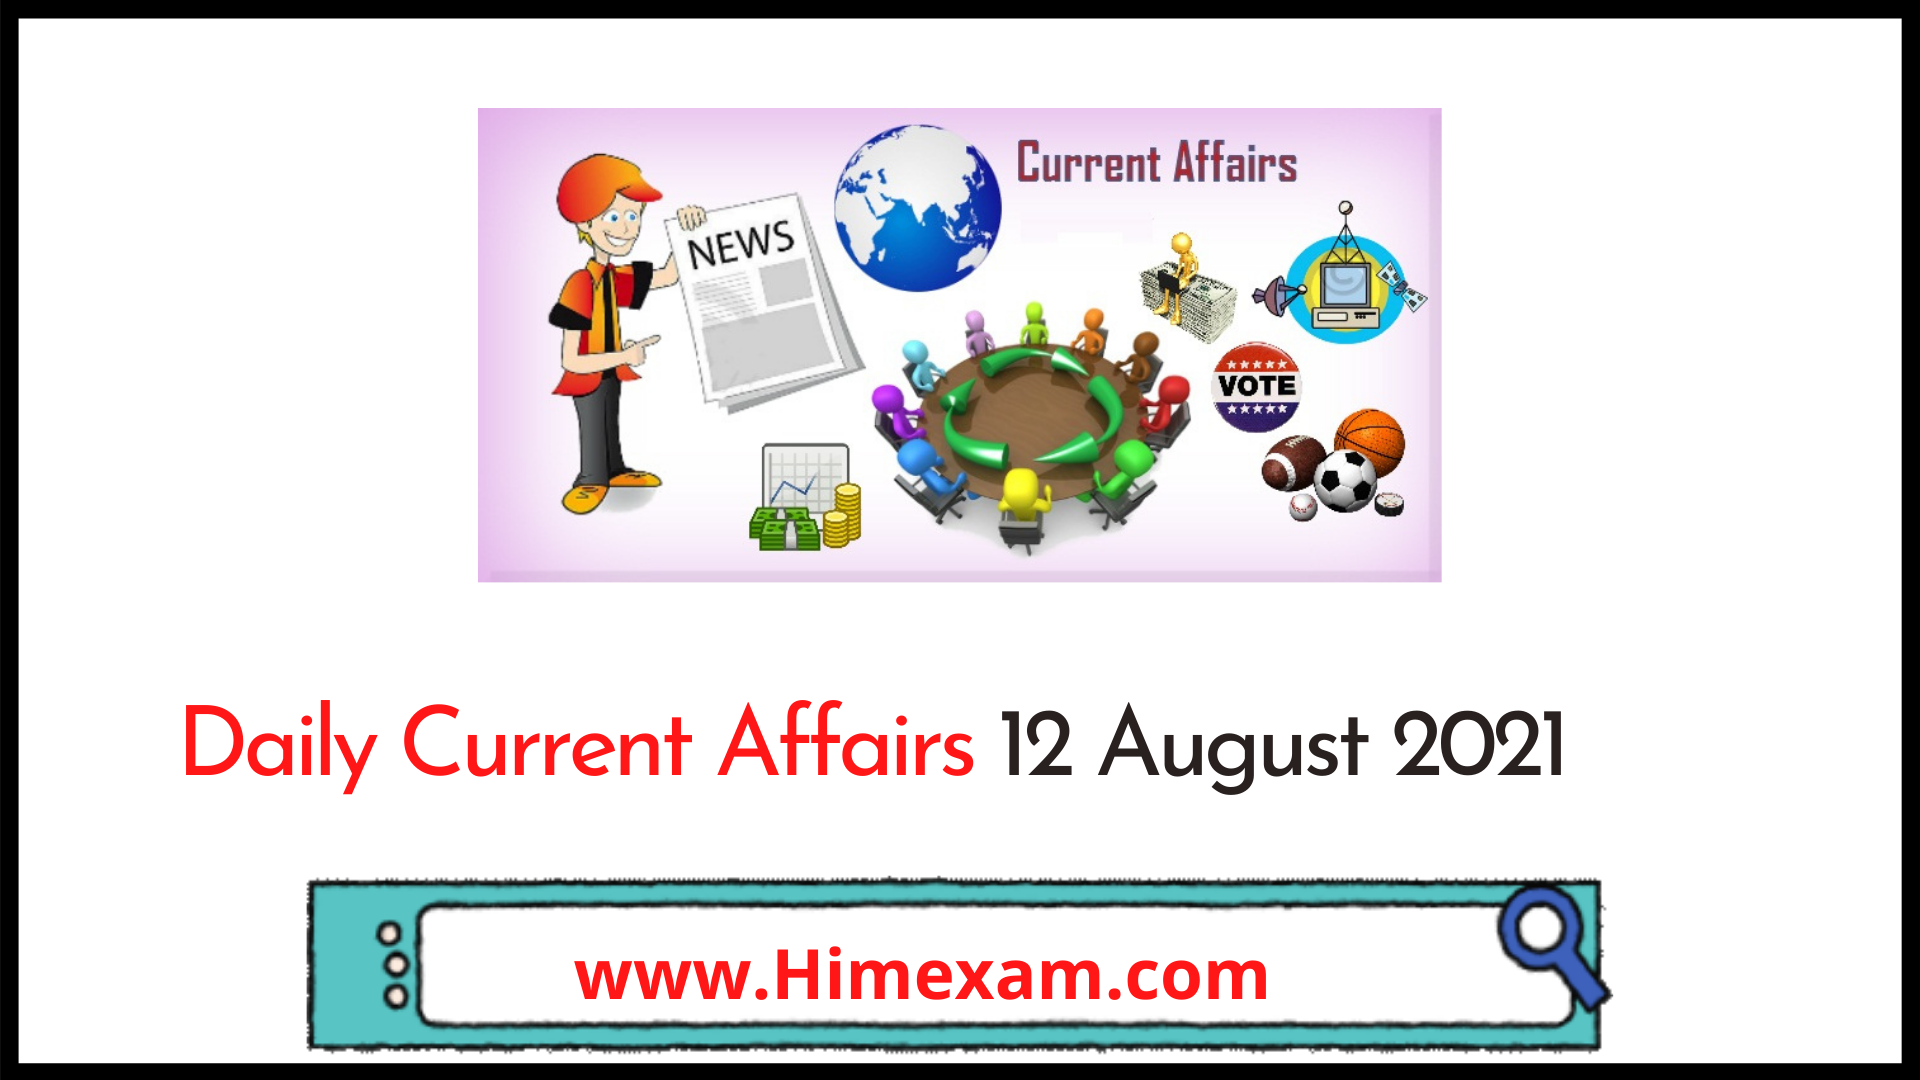 Daily Current Affairs 12 August 2021